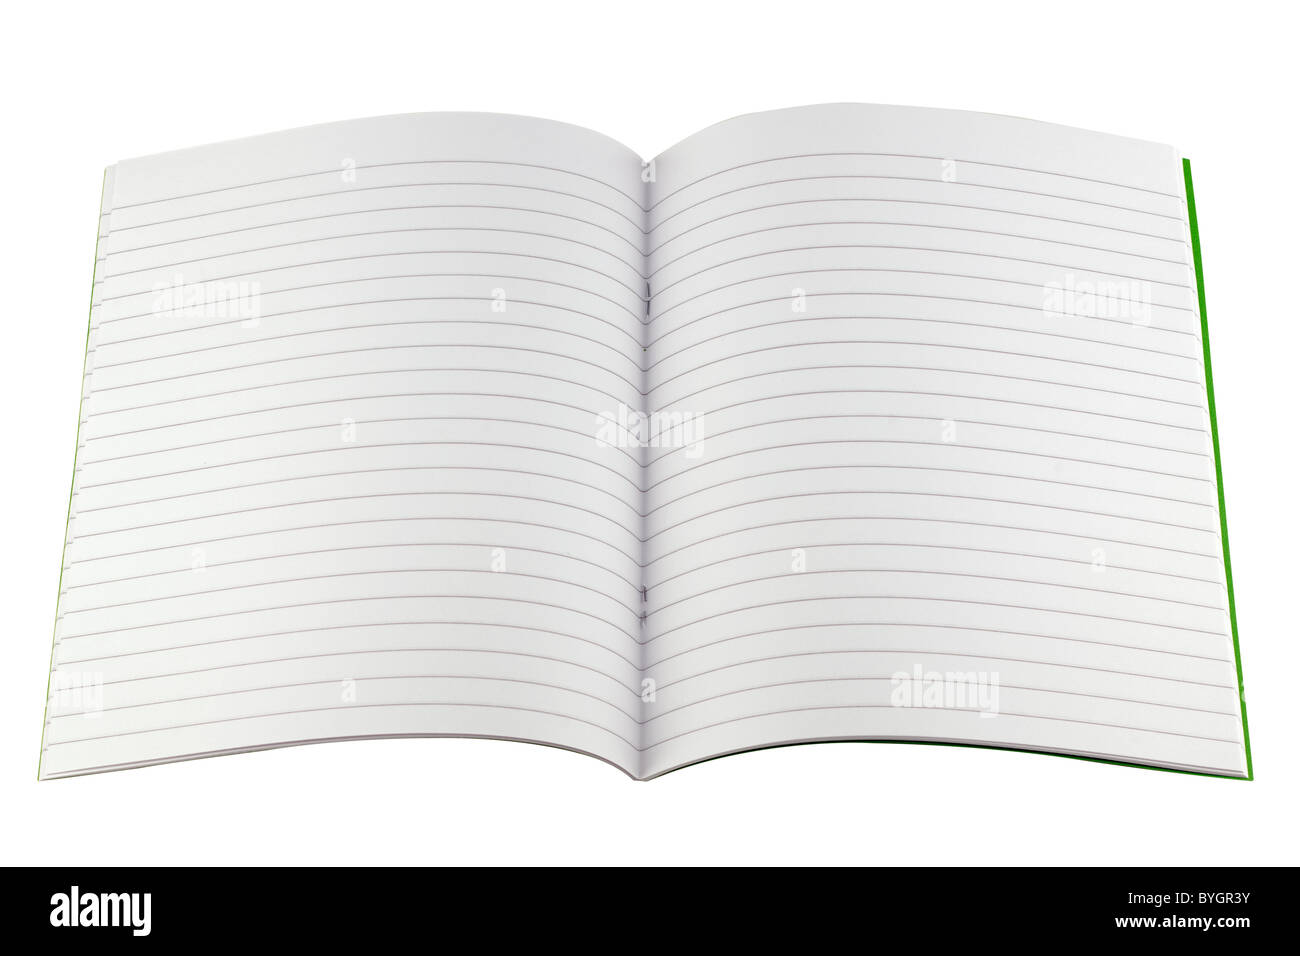 Fully lined writing book - Stock Image